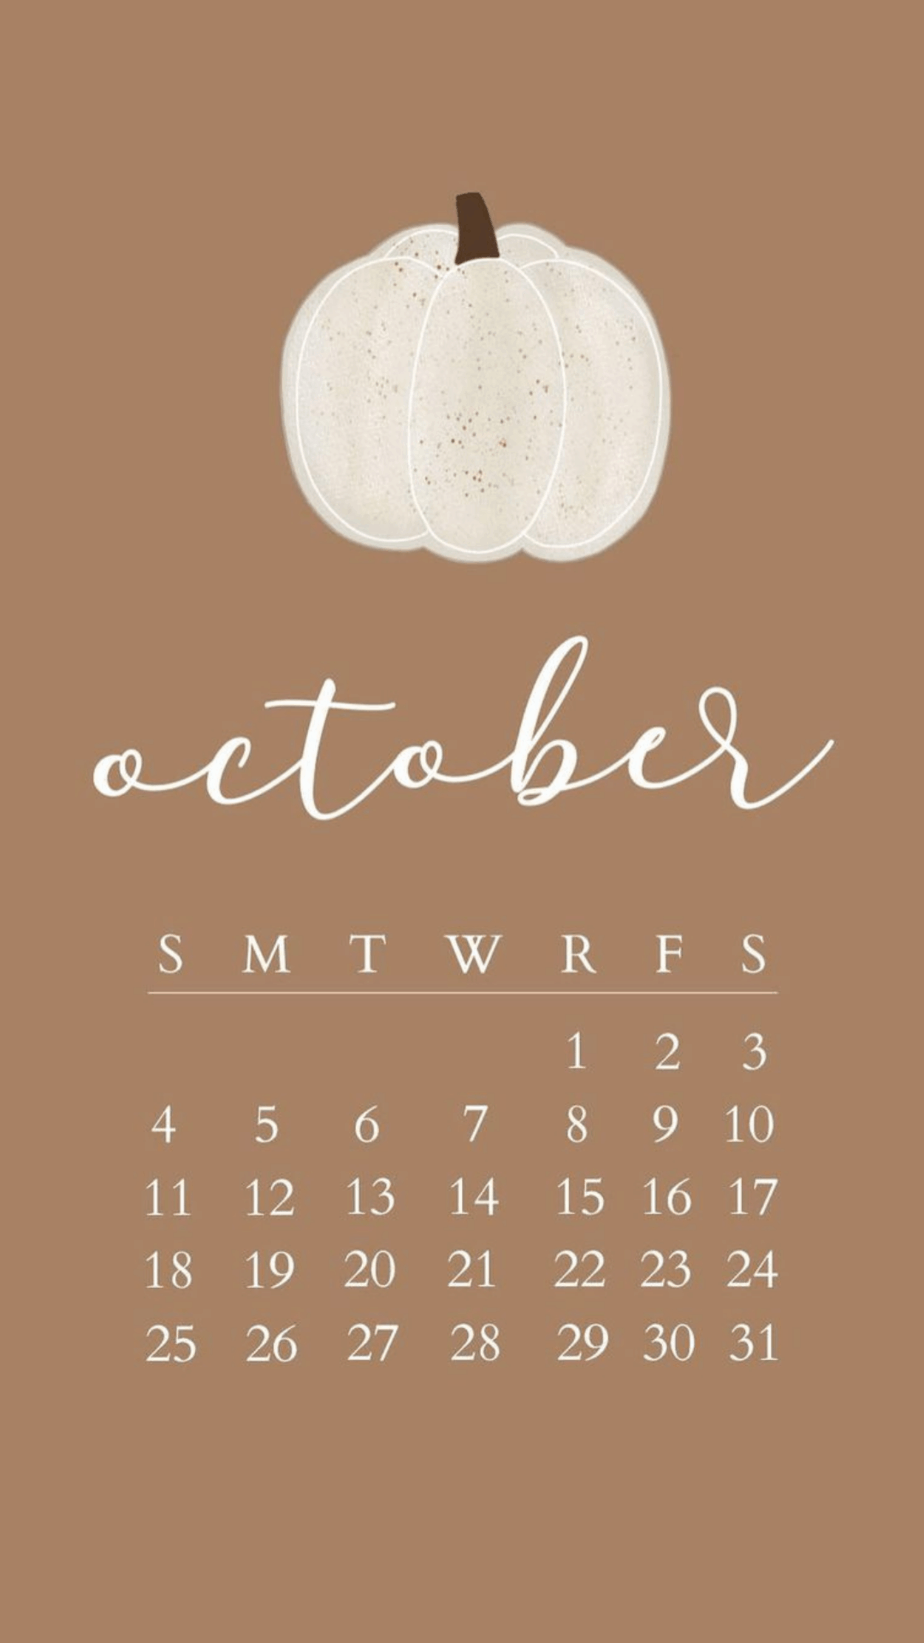 October Fall Wallpaper.You can always make your iPhone look aesthetic with cute wallpapers, these 40 beautiful and aesthetic autumn fall wallpapers for your iPhone will make you feel that autumnal fall vibes.